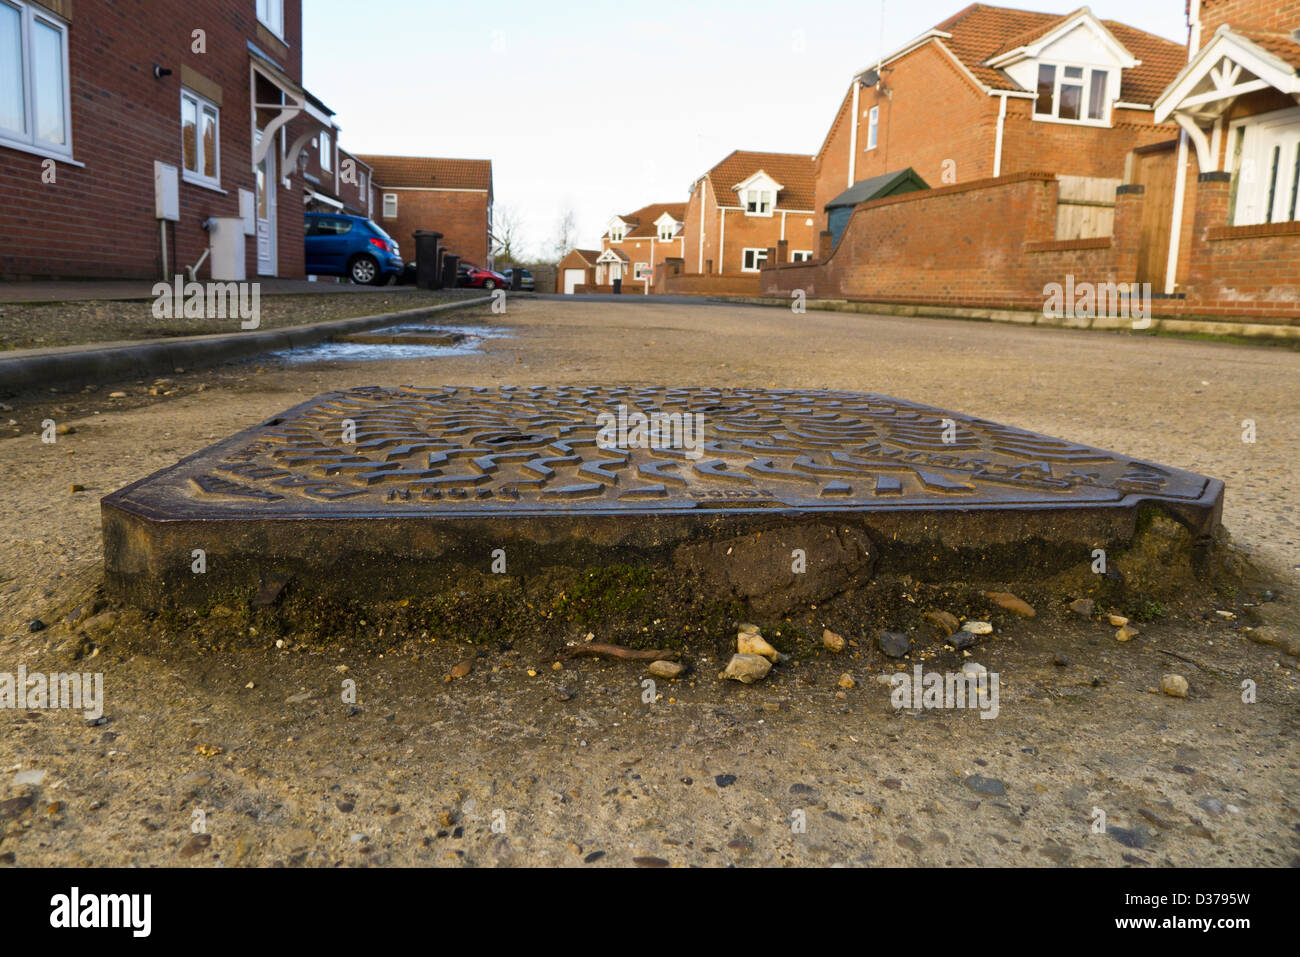 A raised manhole cover on a poorly surfaced road in King's Lynn, Norfolk. - Stock Image